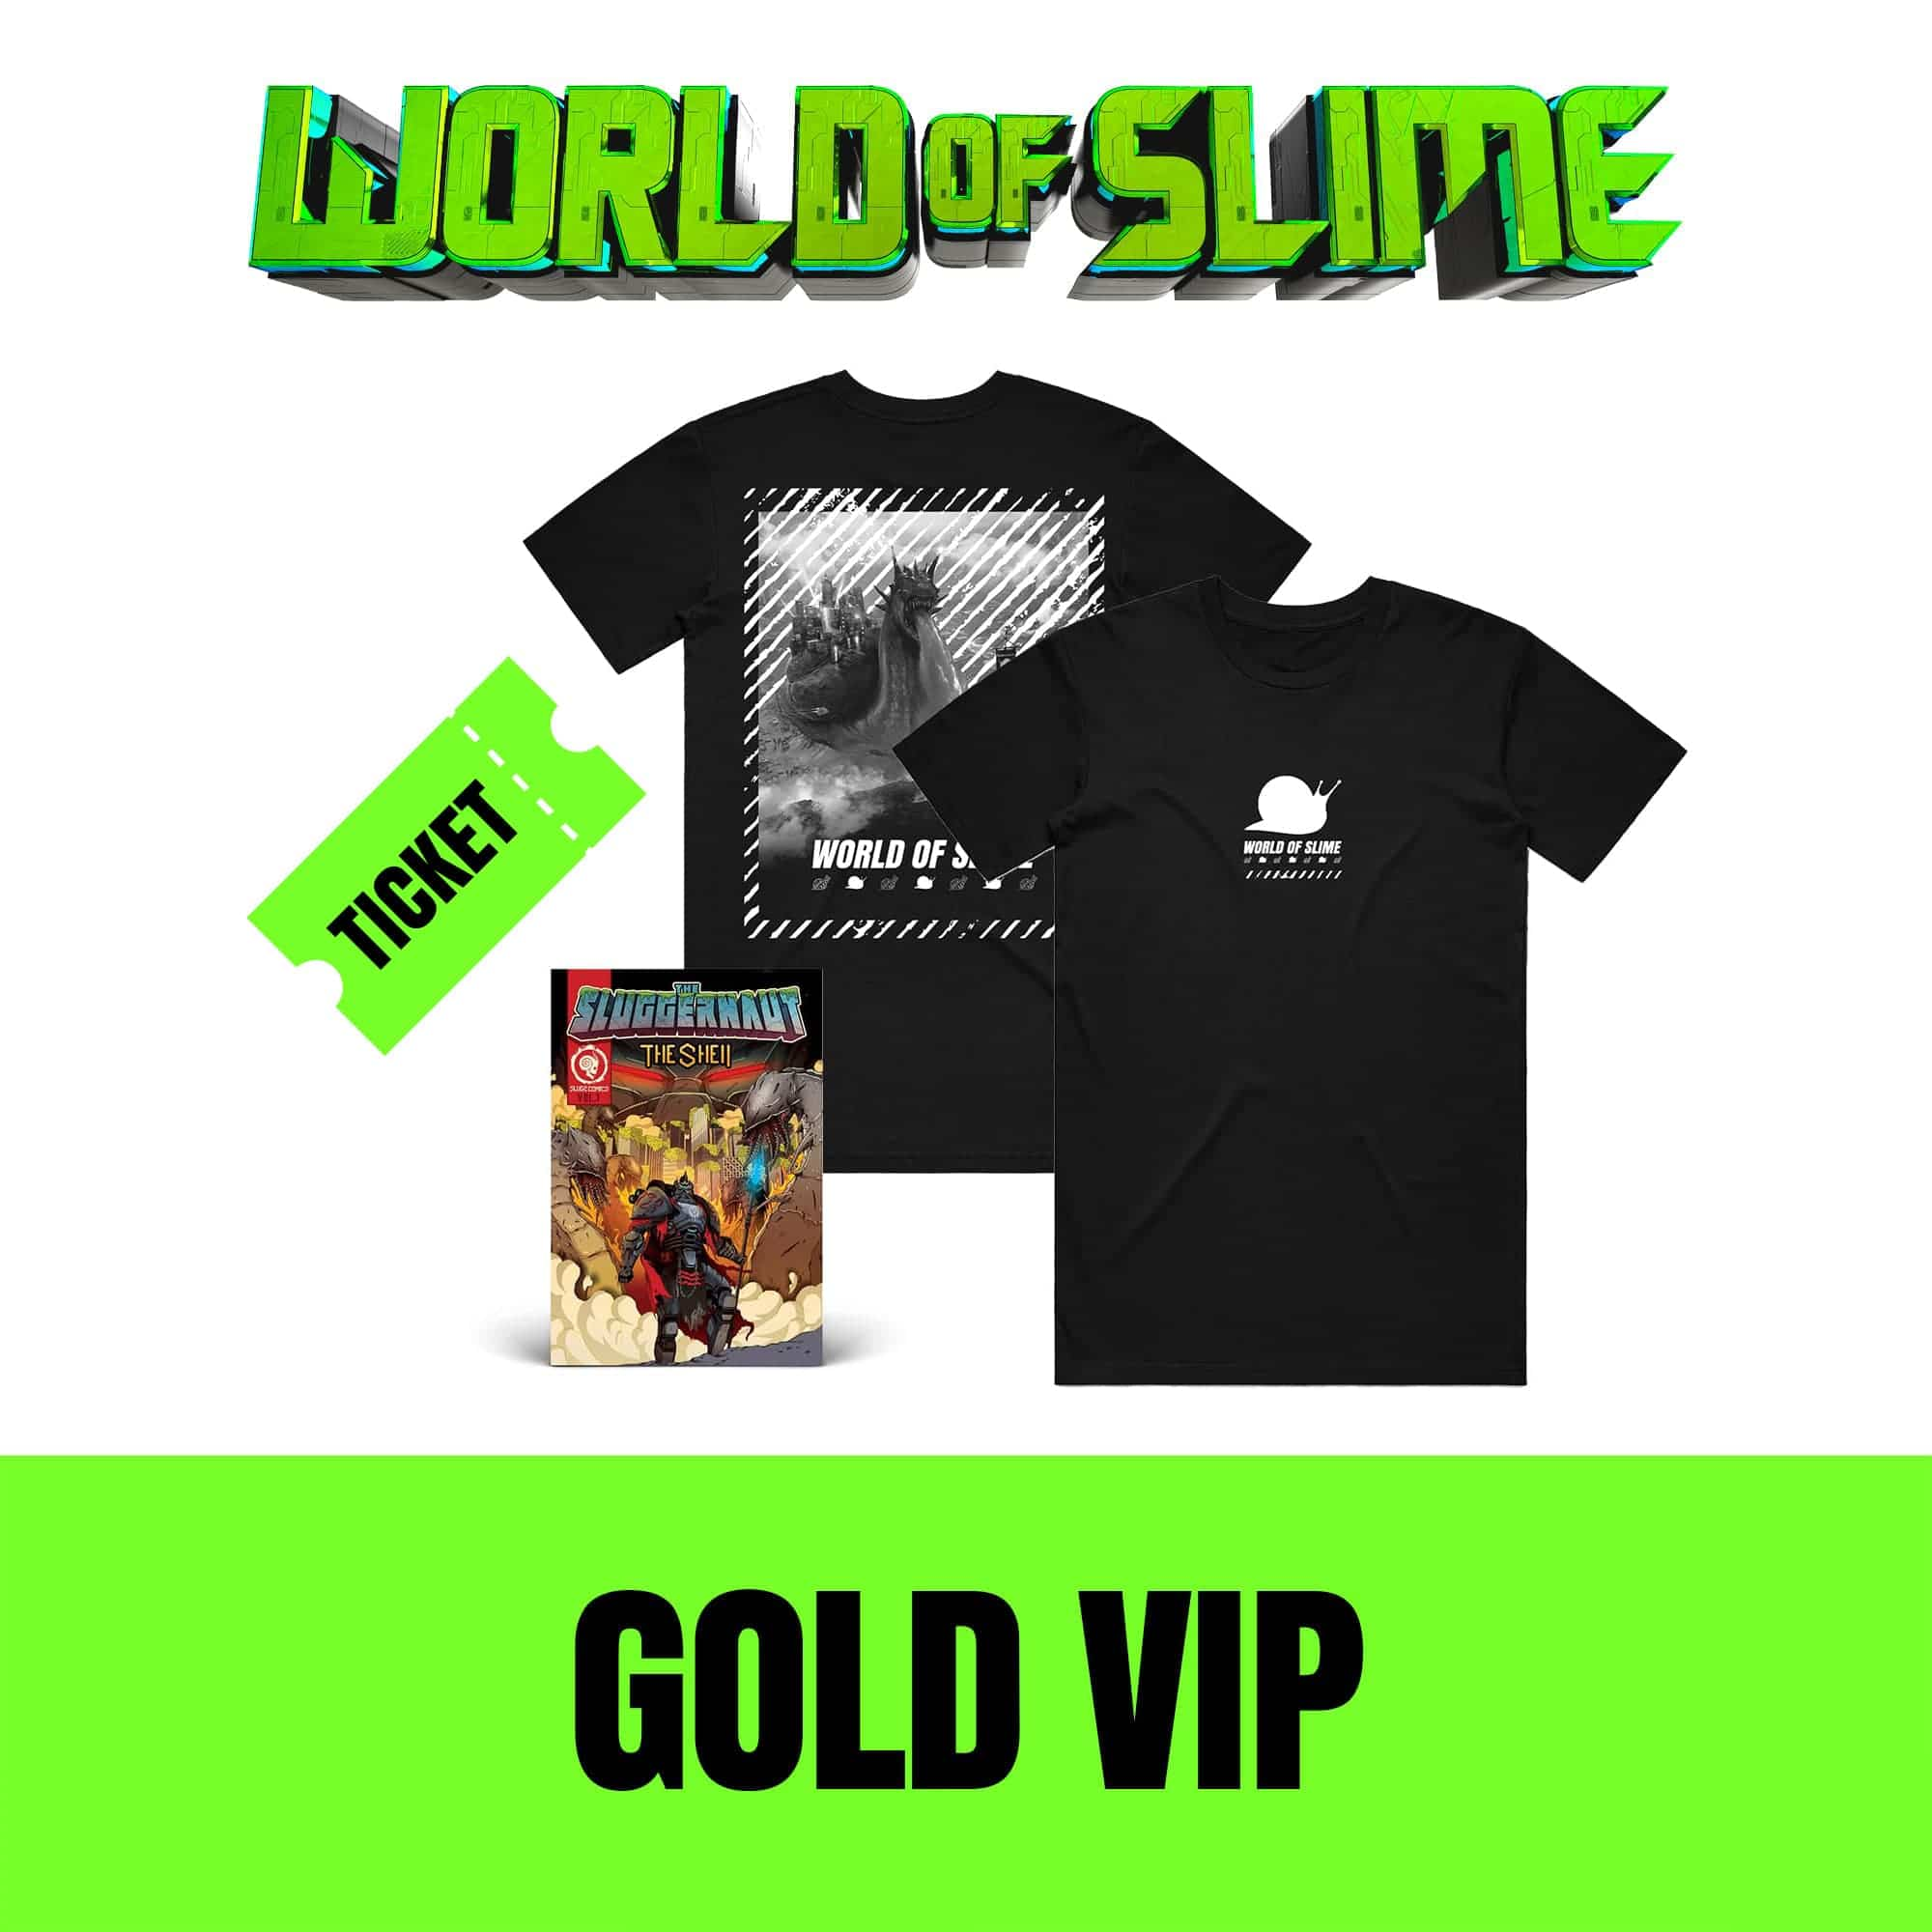 World Of Slime Tour - New York City, NY - 12/14